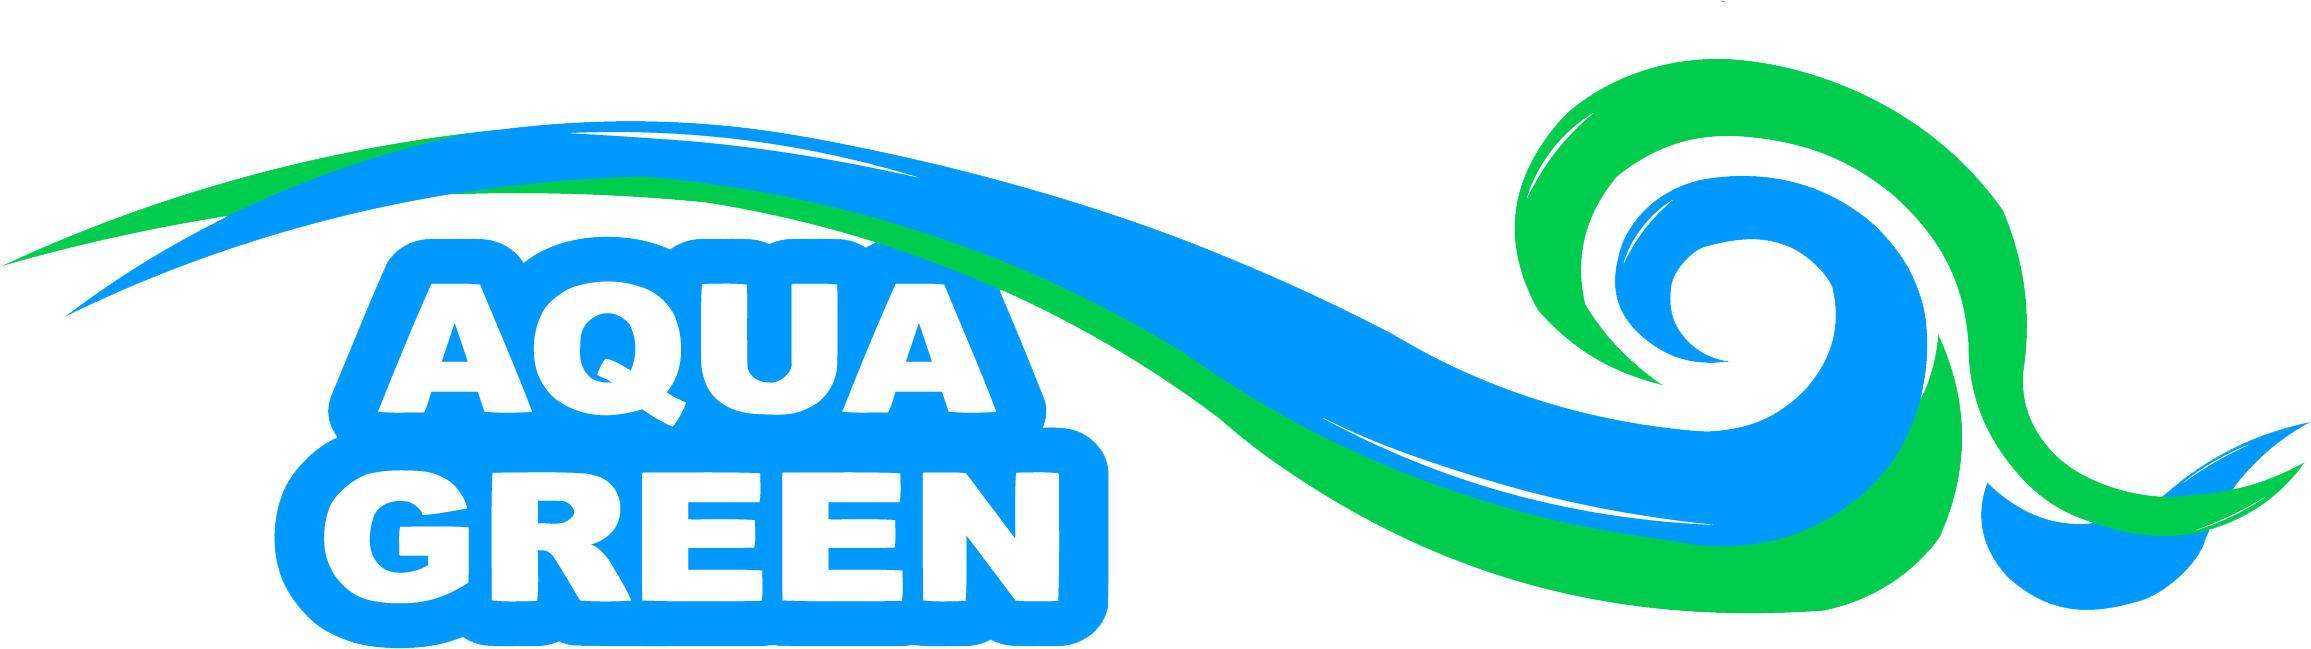 aquagreen logo_1_47